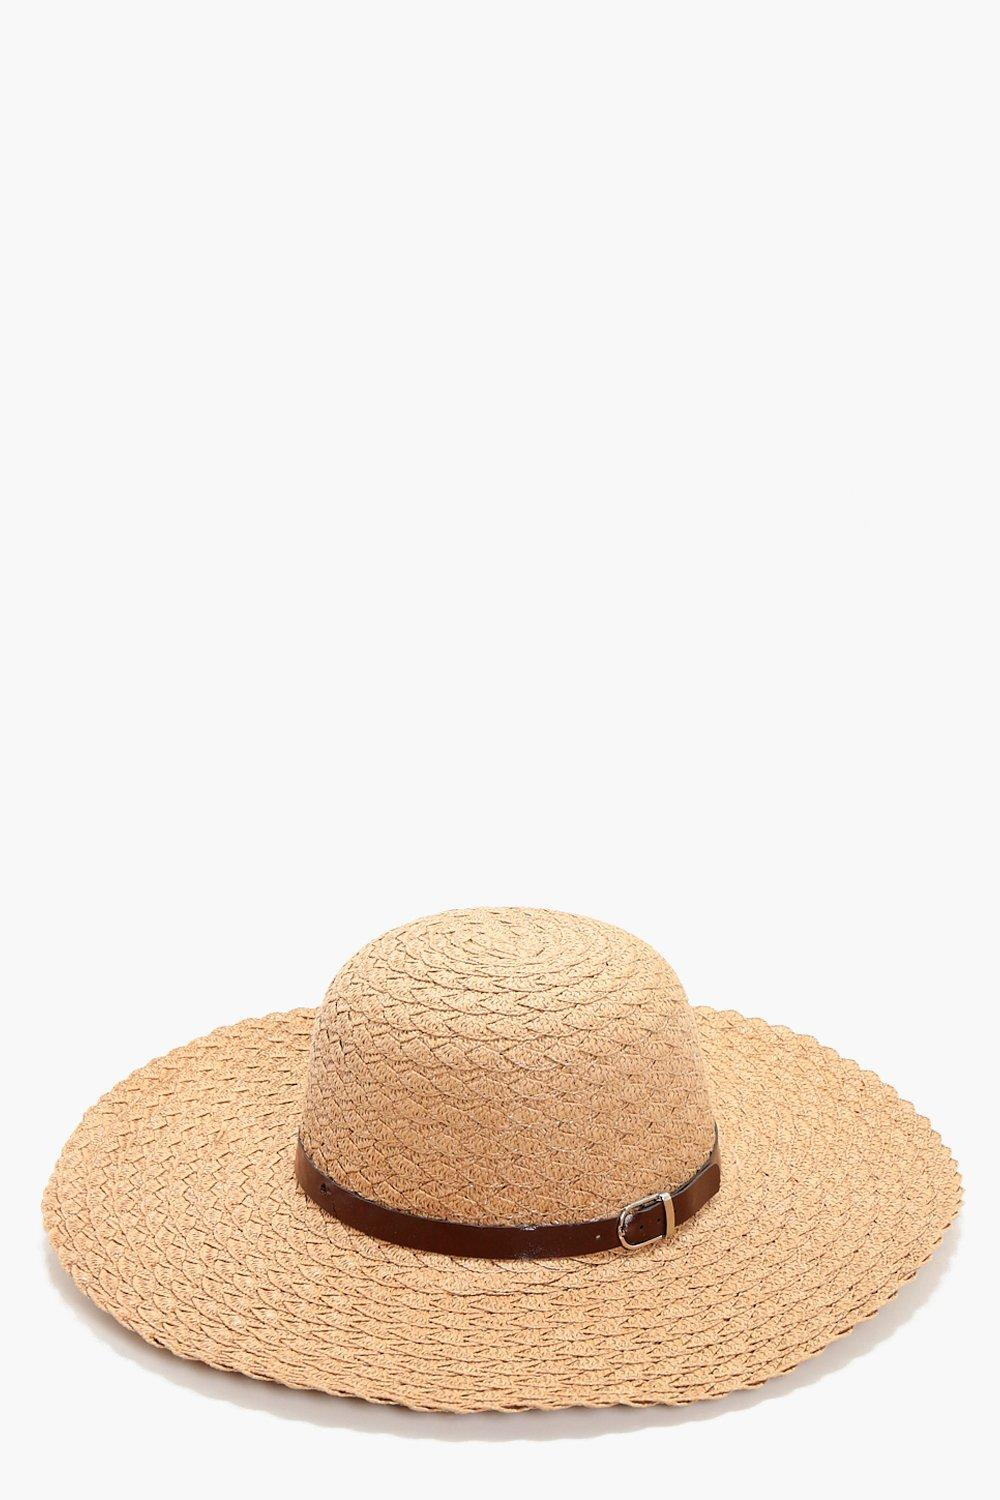 PU Trim Straw Floppy Hat - natural - Lily PU Trim